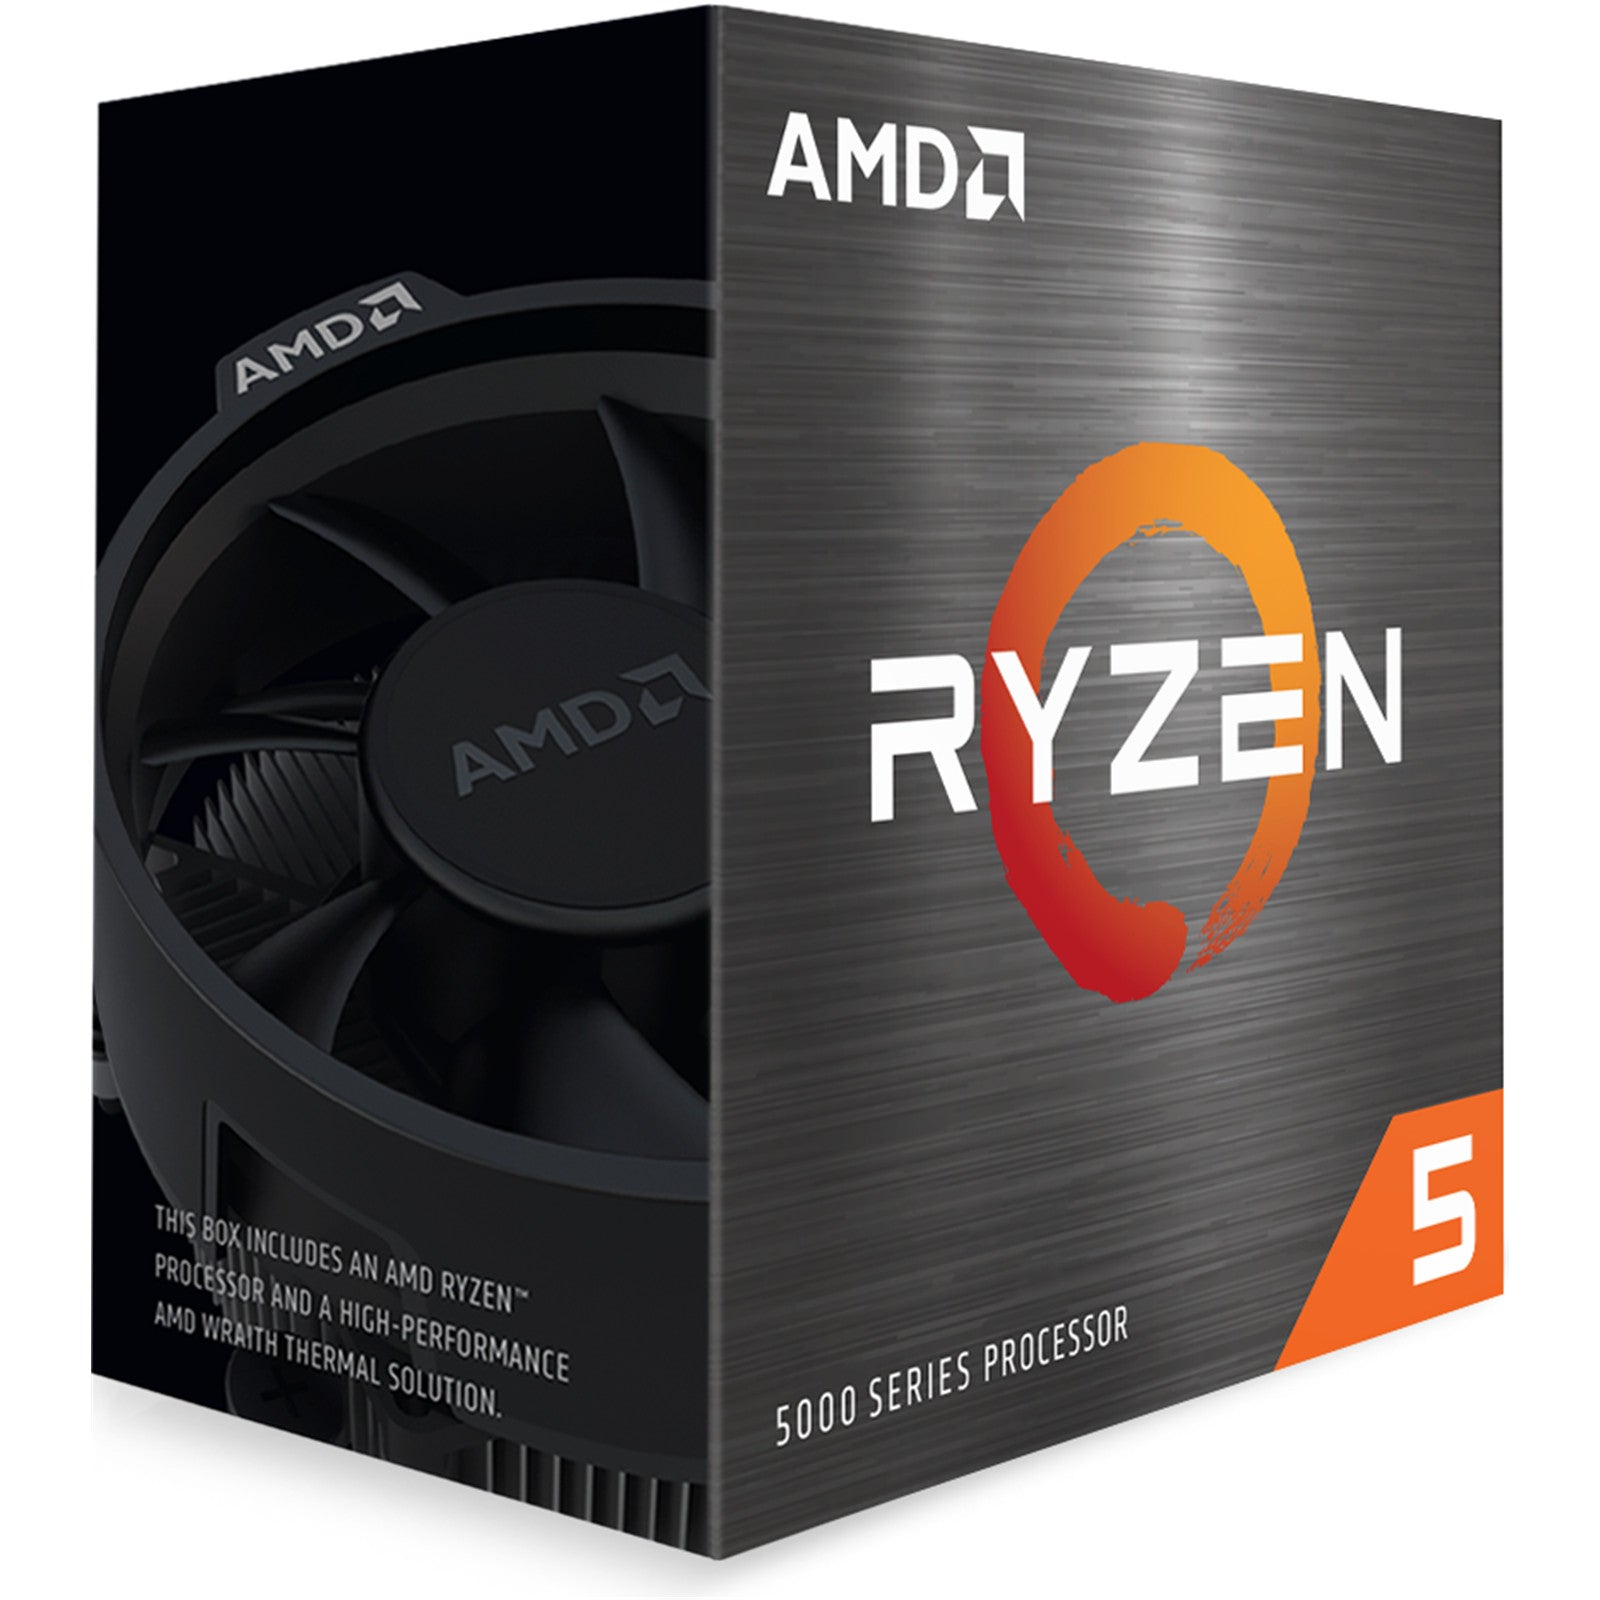 AMD RYZEN 5 5600X 6-Core 3.8 GHz (4.7 GHz Max Boost)